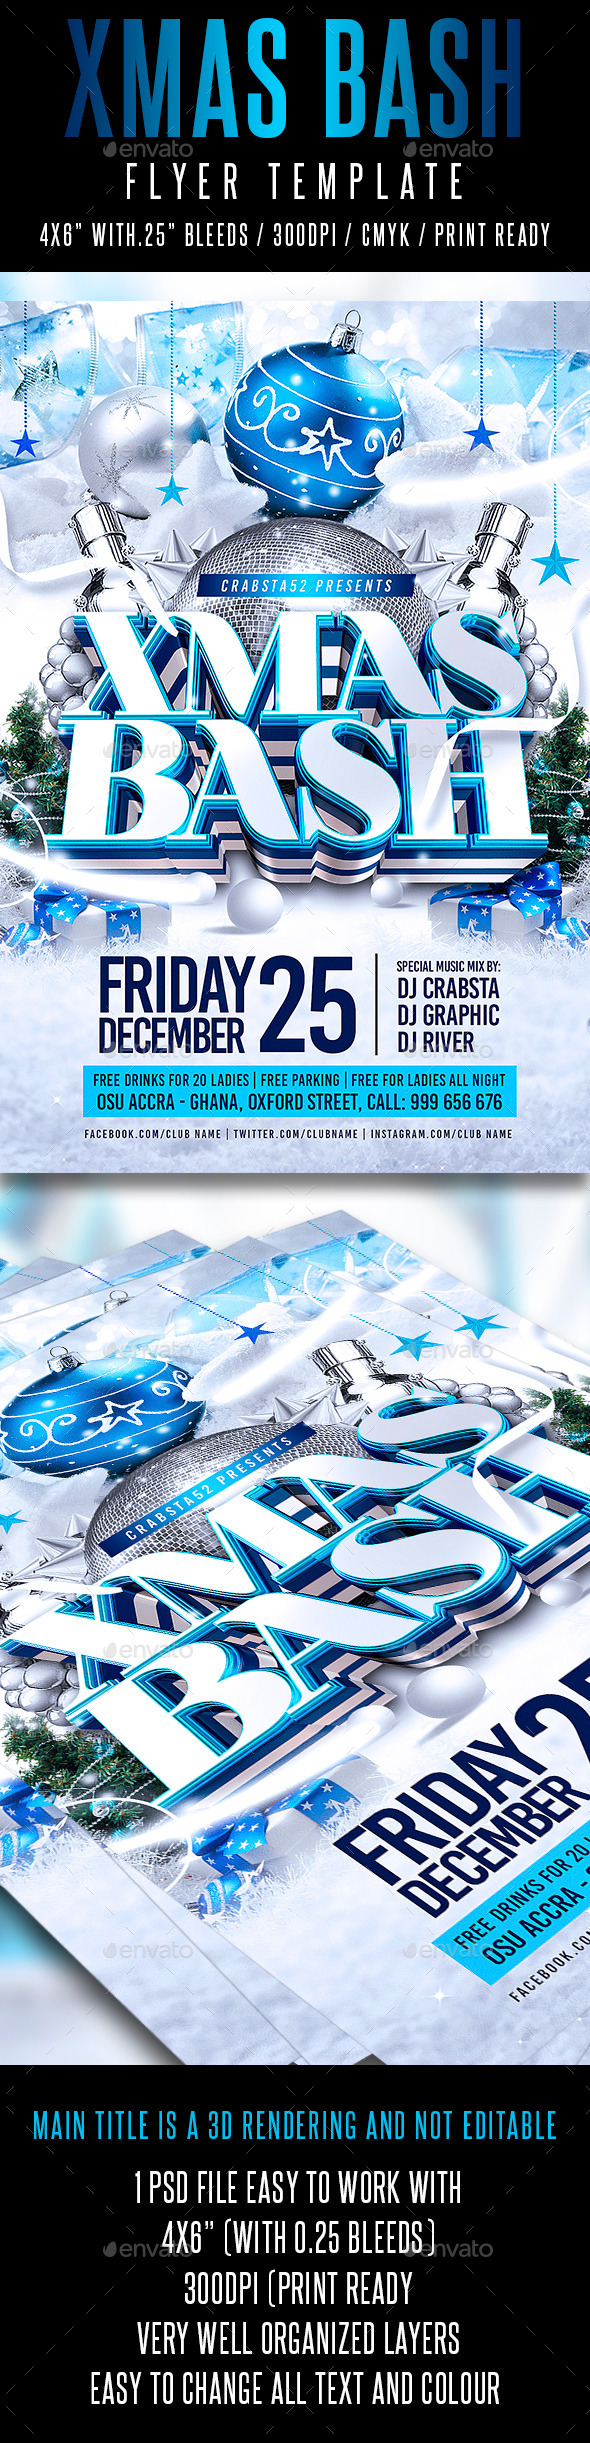 Xmas Bash Flyer Template - Flyers Print Templates